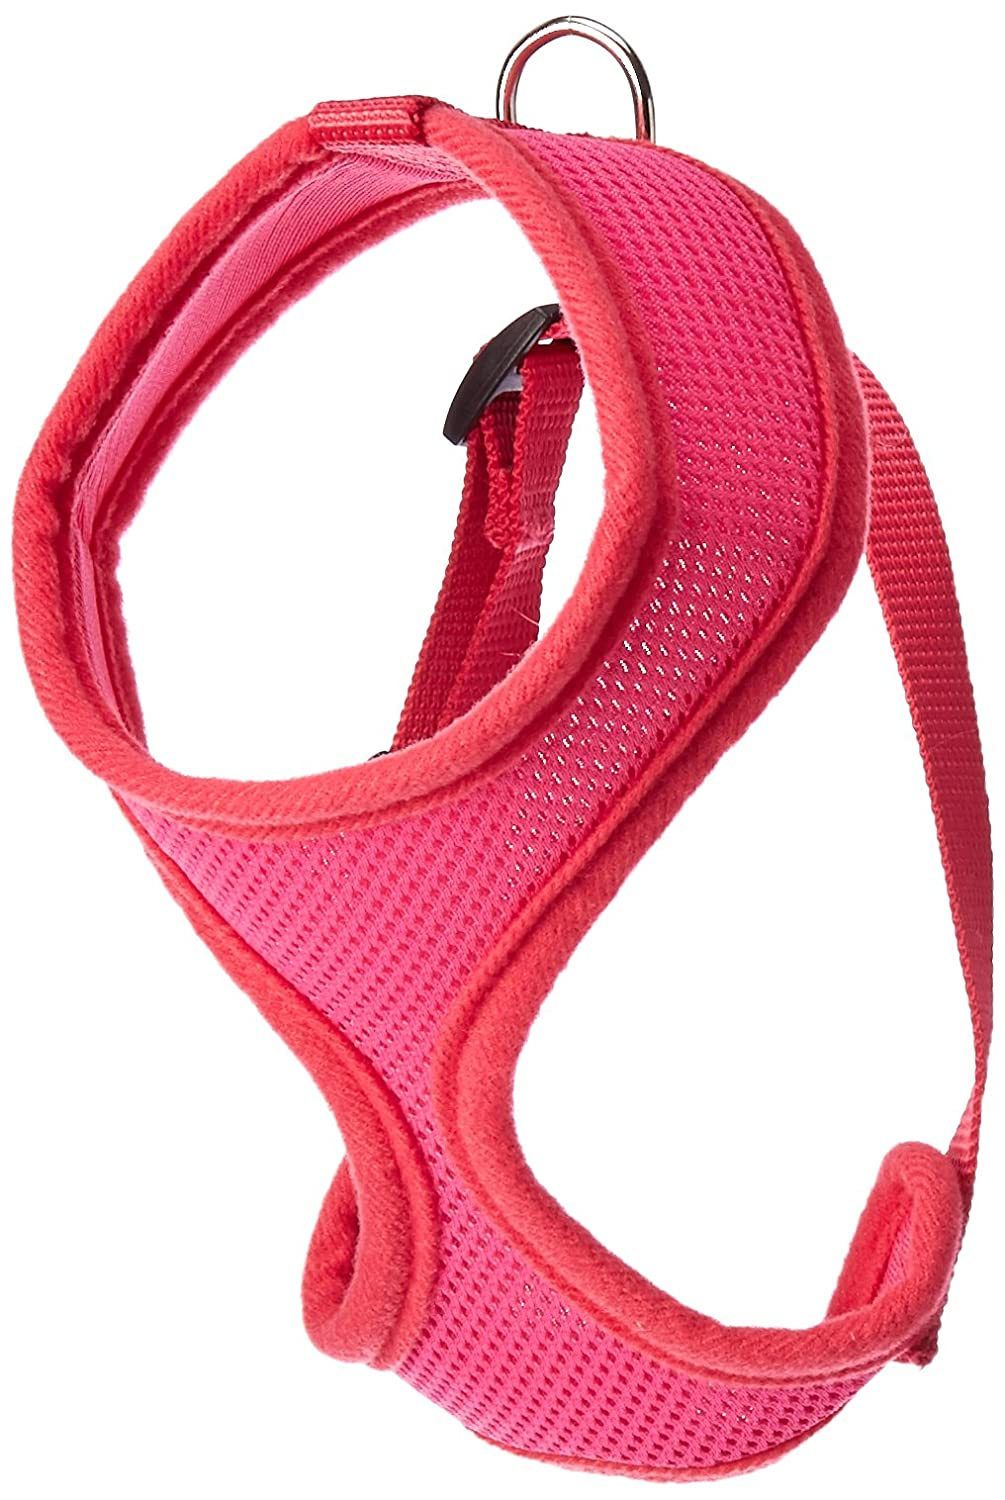 Dog   Cat   Pet Charms Soft Mesh Harnesses Pink Small